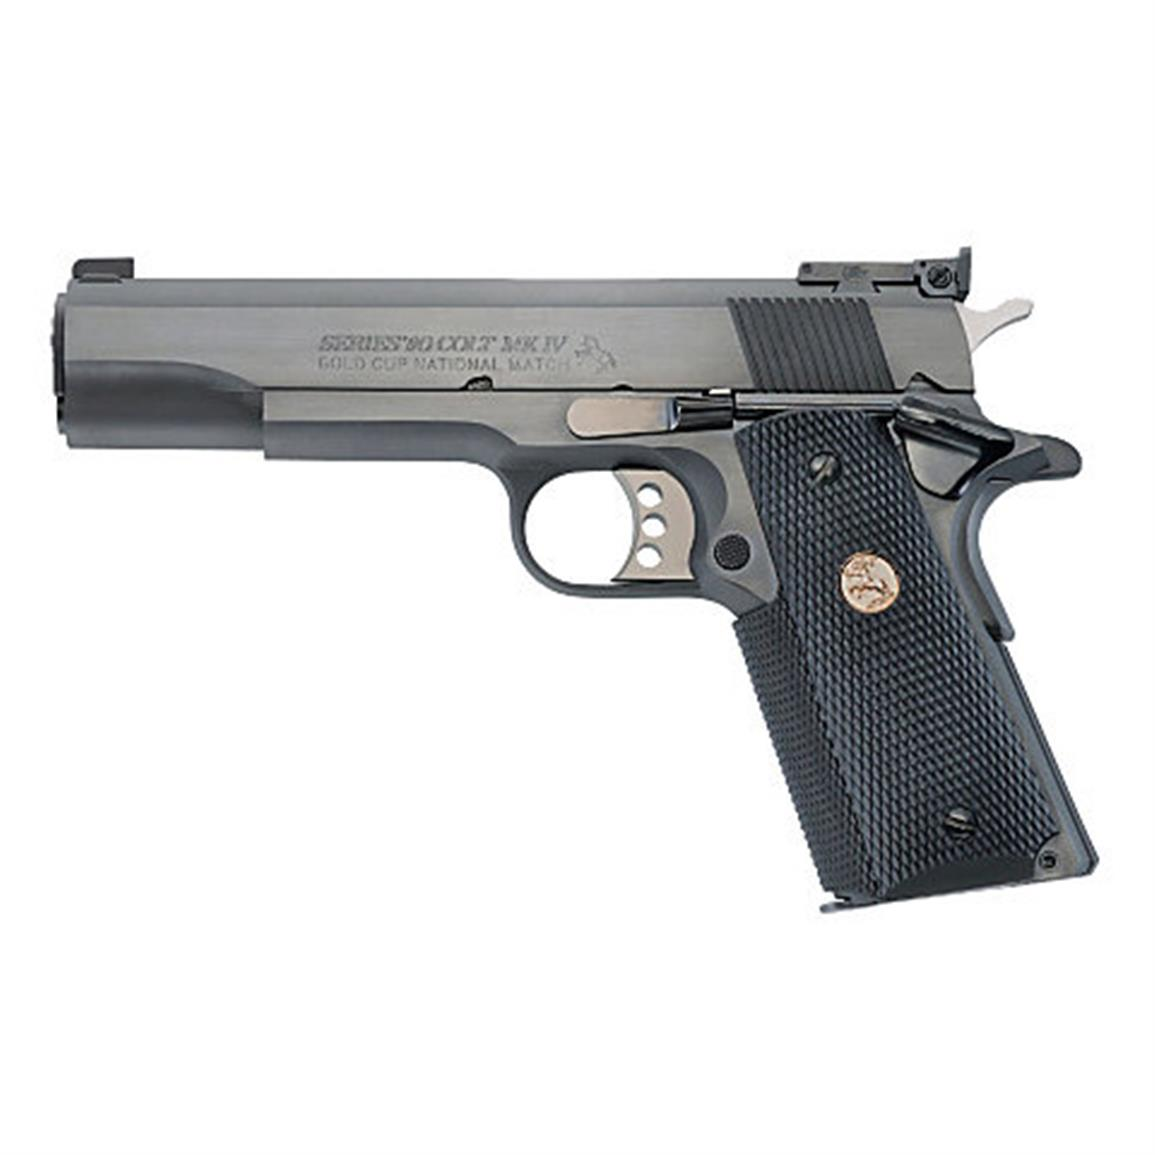 Colt Gold Cup National Match, Semi-automatic, .45 ACP, O5870NM, 098289042439